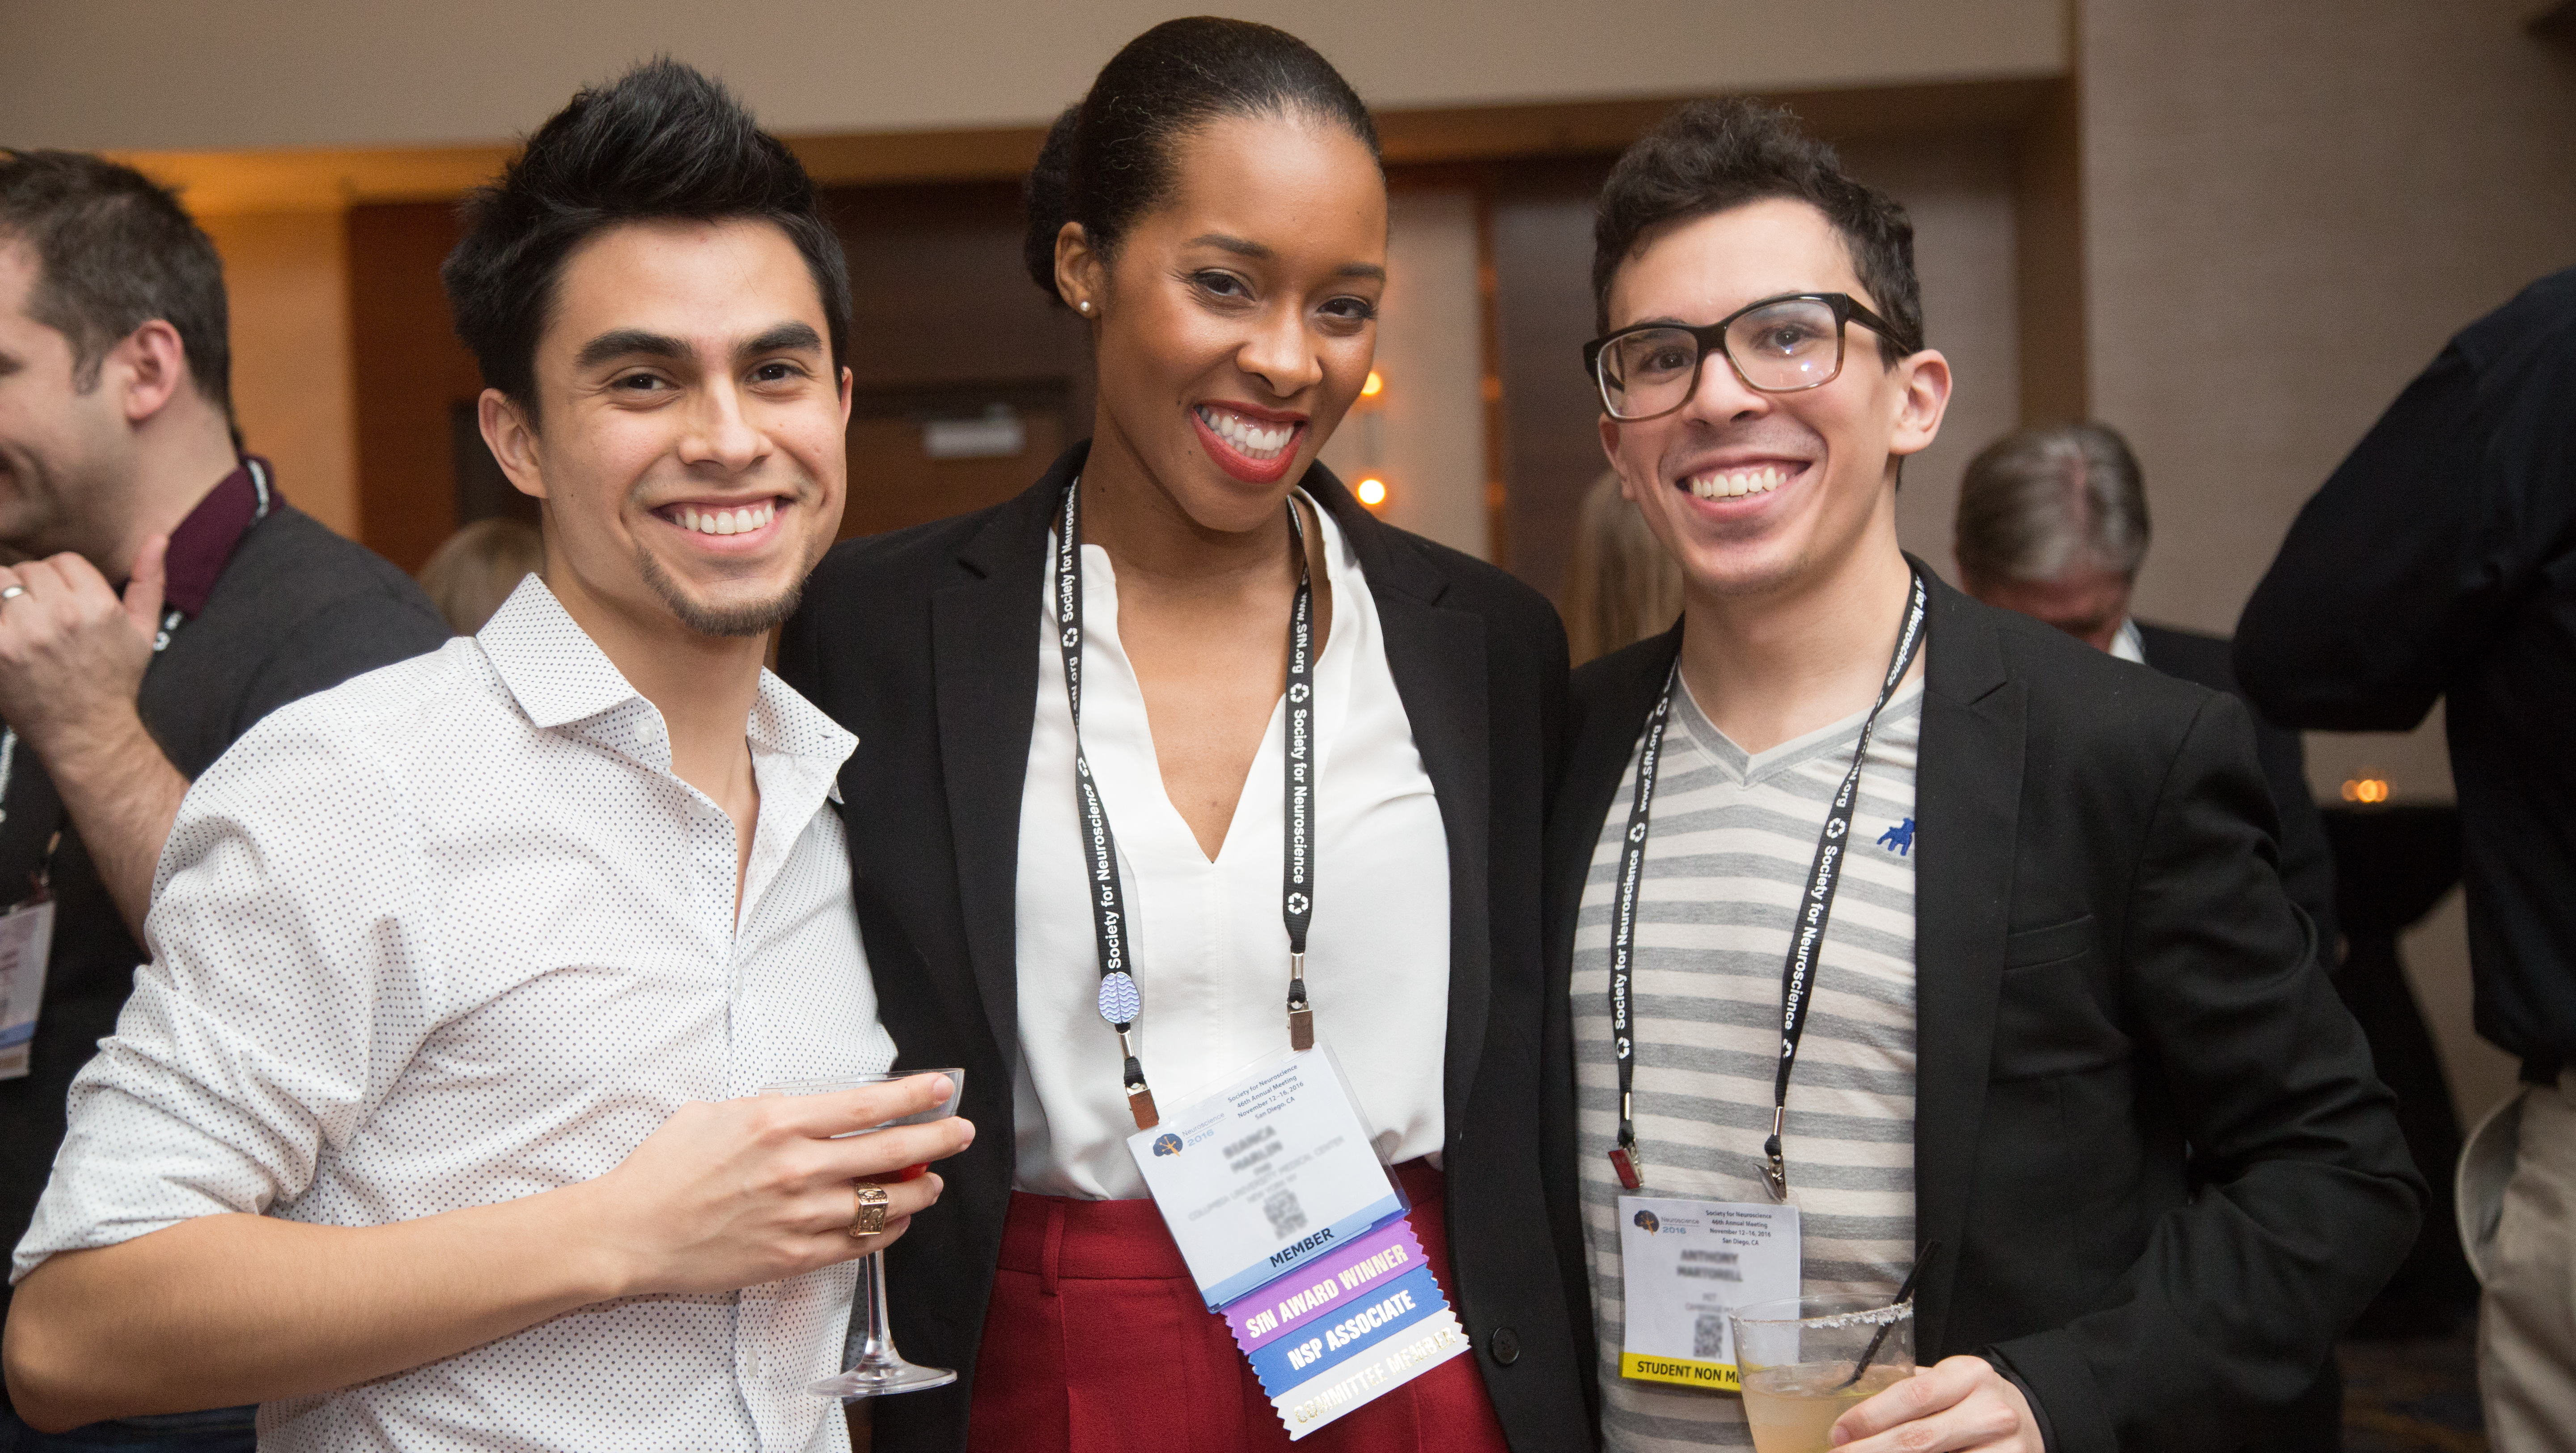 Attendees at SfN's annual meeting can make connections anywhere — in lecture halls, on the poster floor, and at special networking events.